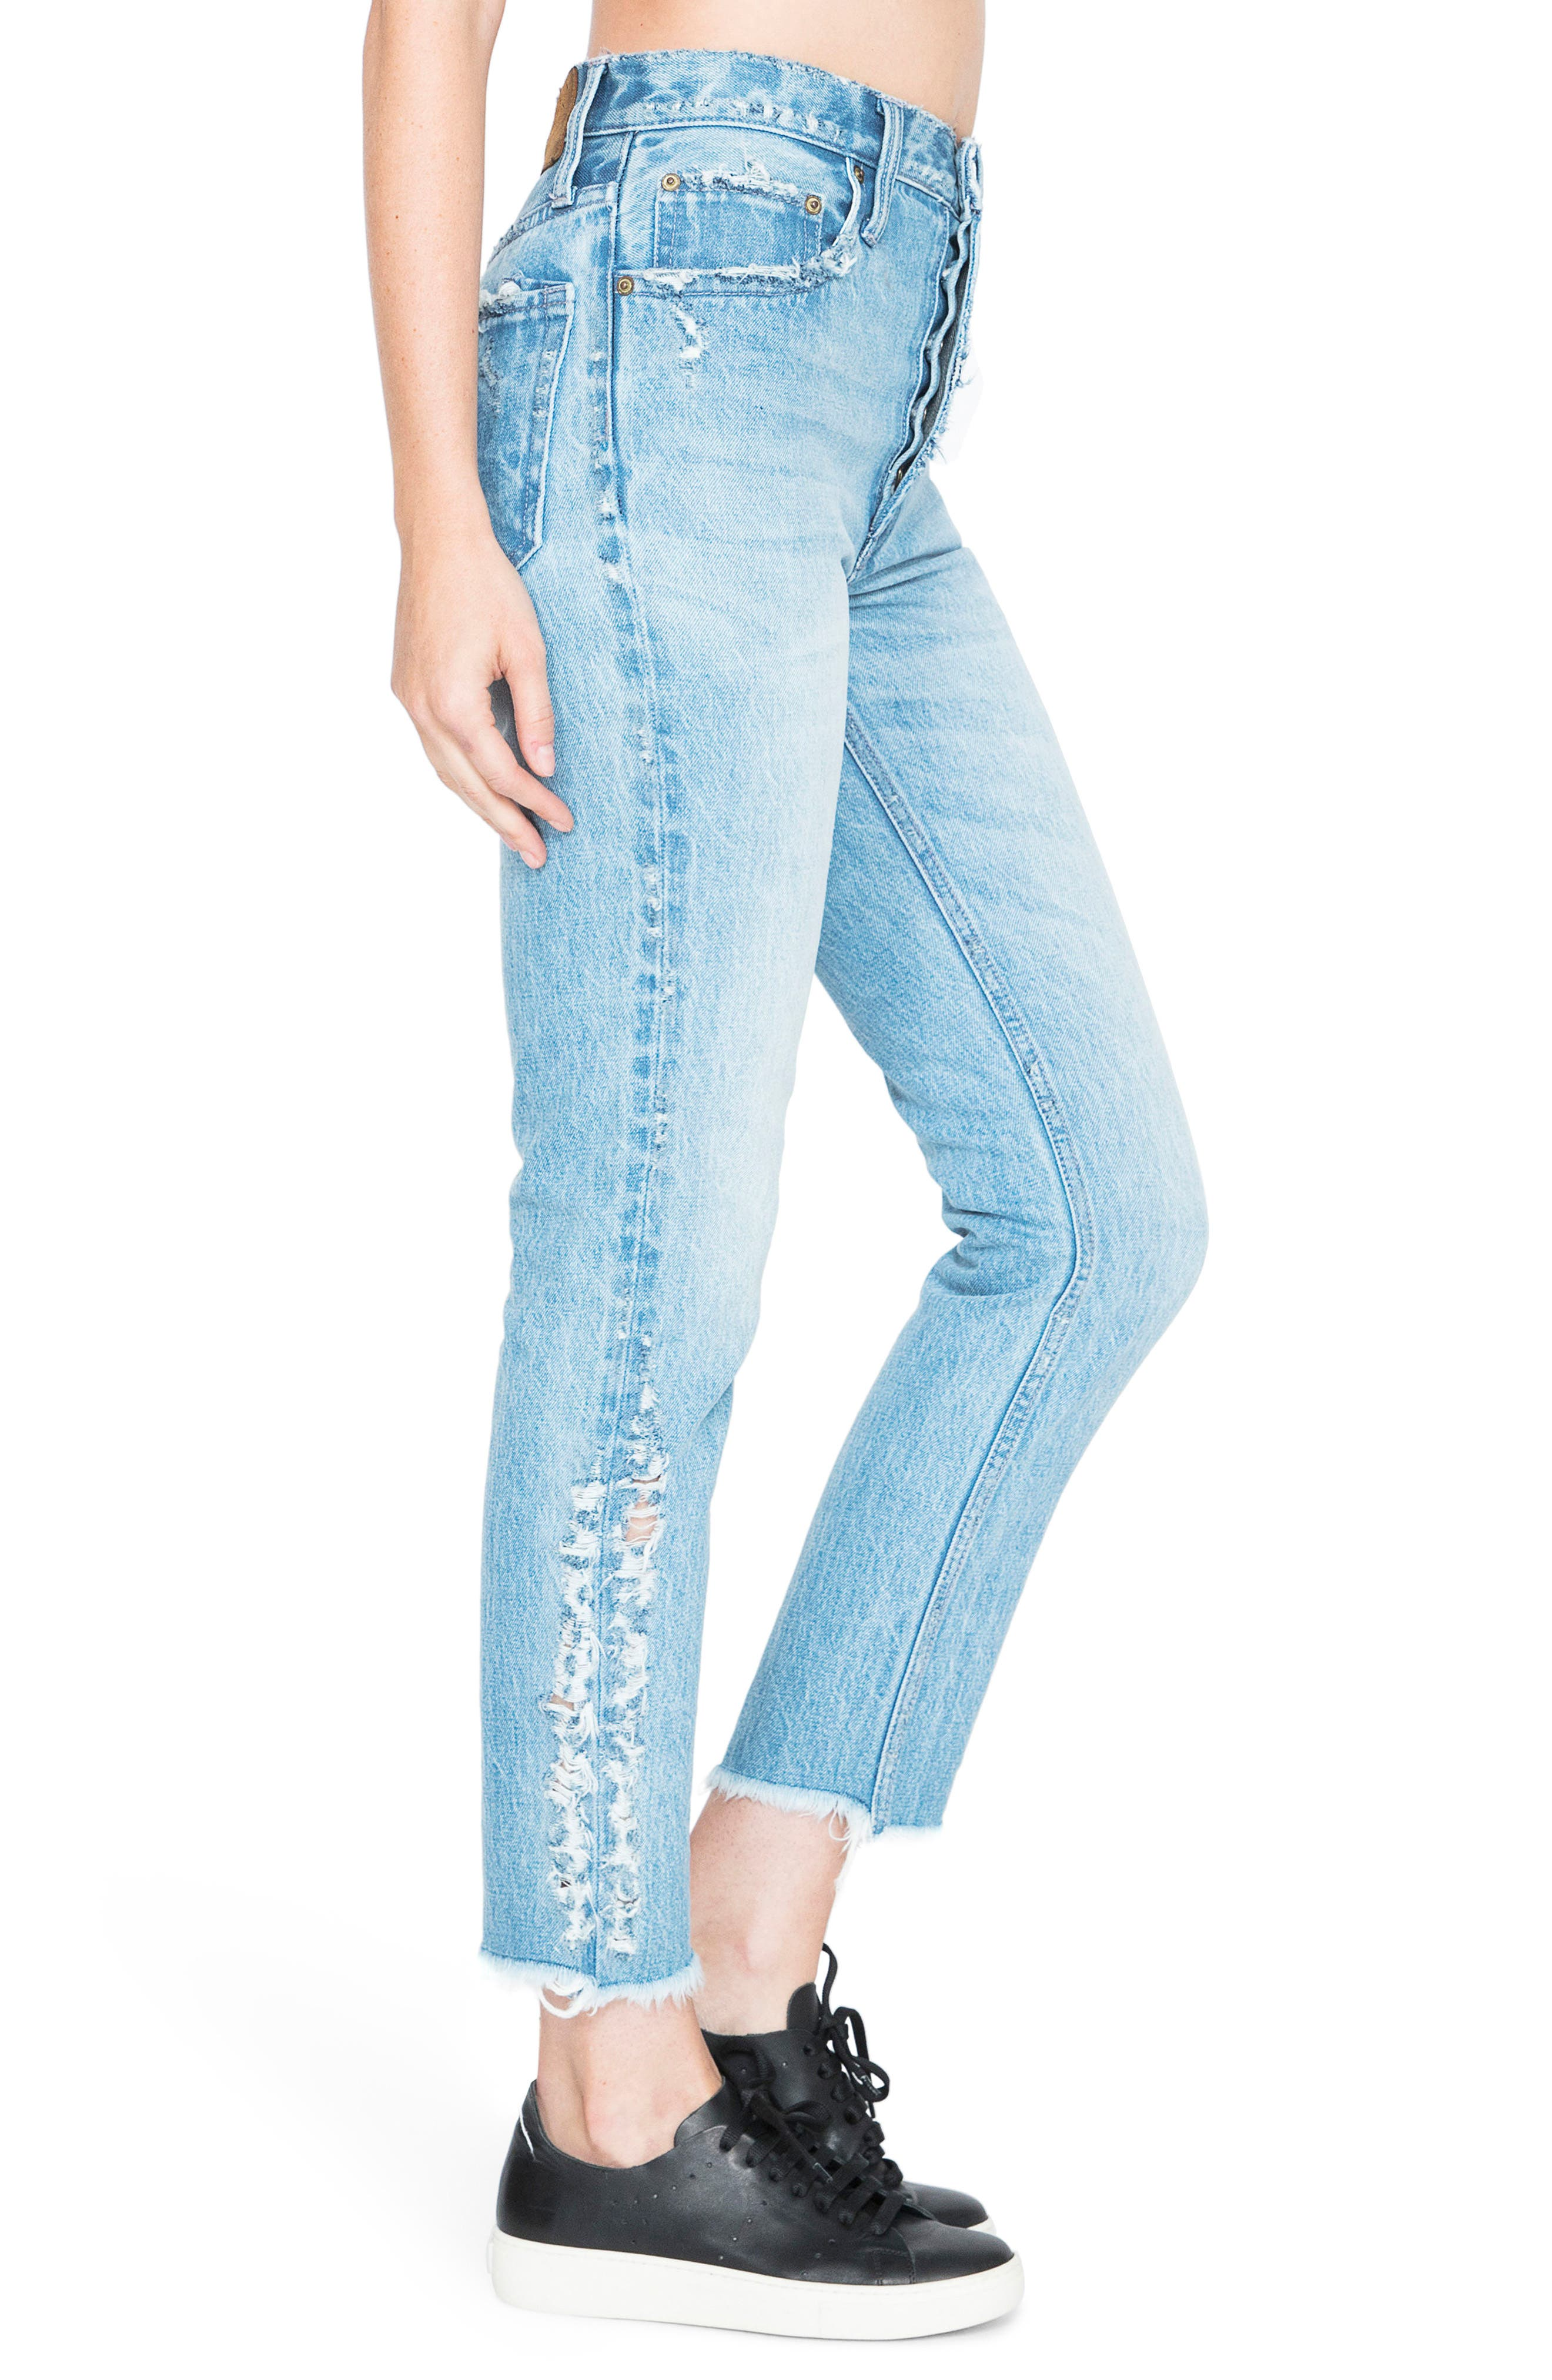 AMX Side Fray High Waist Ankle Jeans,                             Alternate thumbnail 3, color,                             426